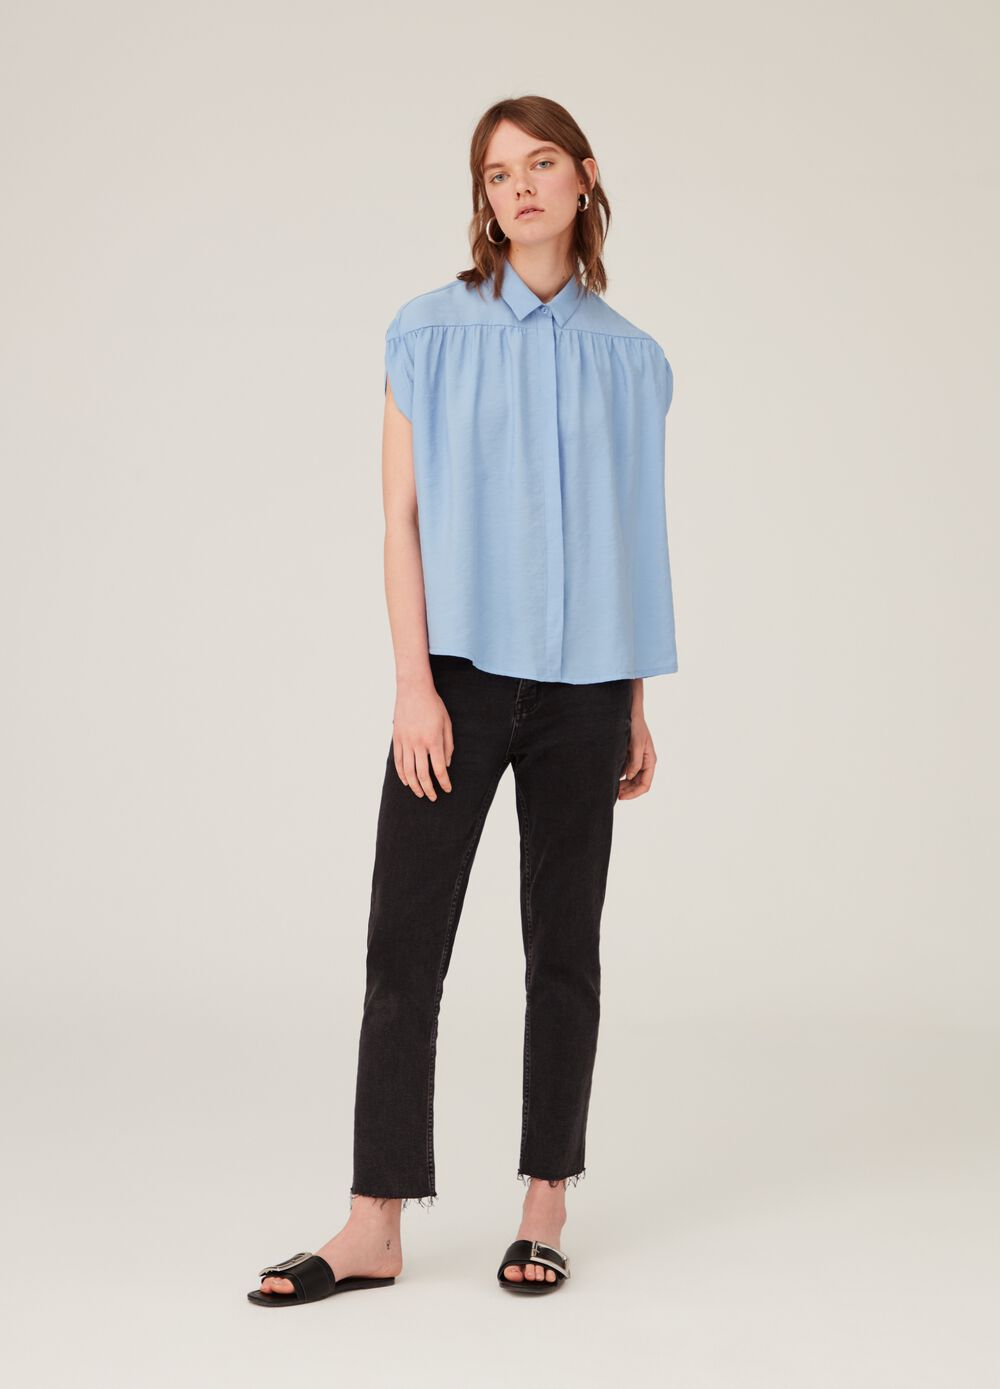 Shirt with bluff collar and cap sleeves